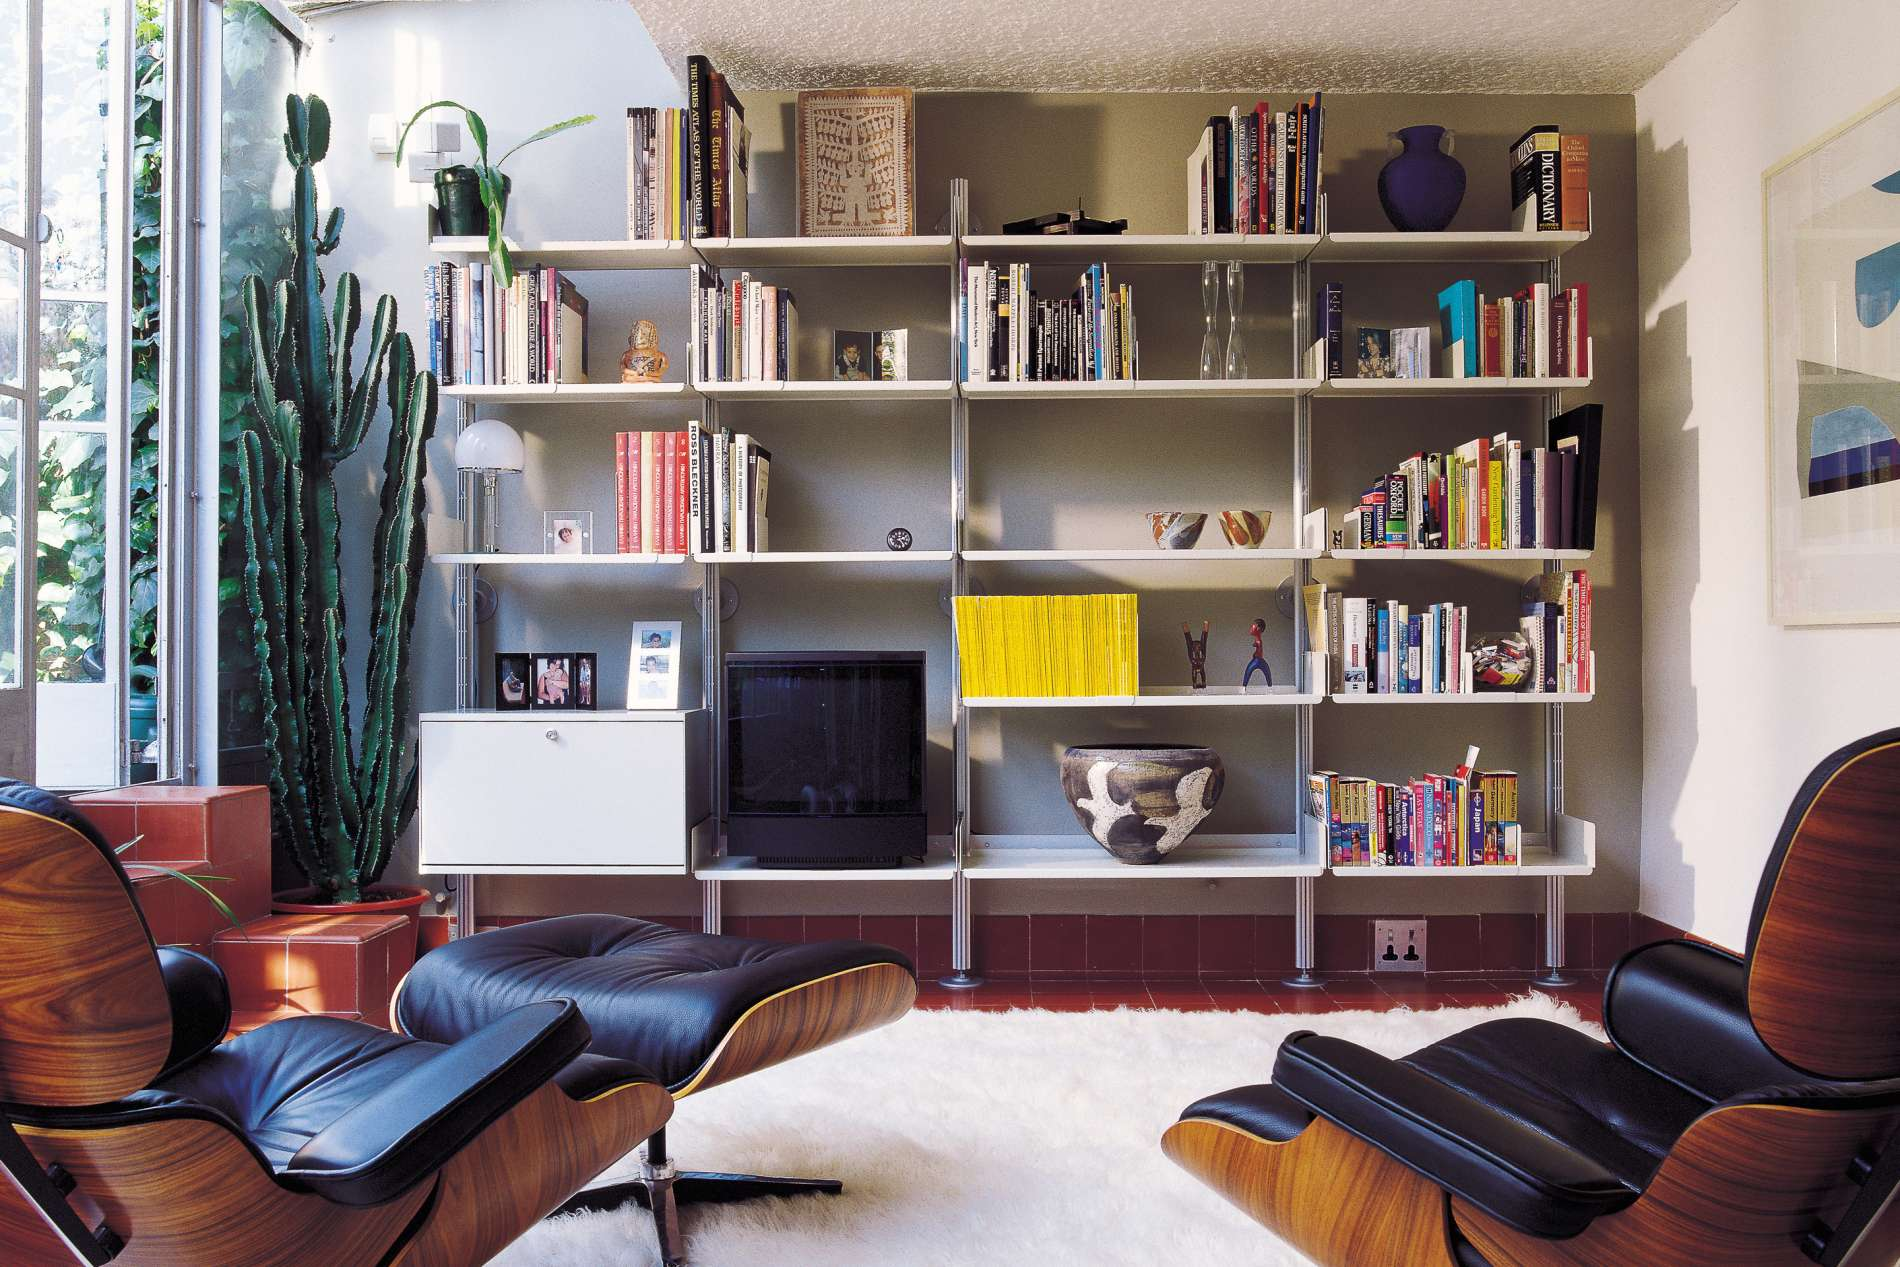 606 Universal Shelving System living space